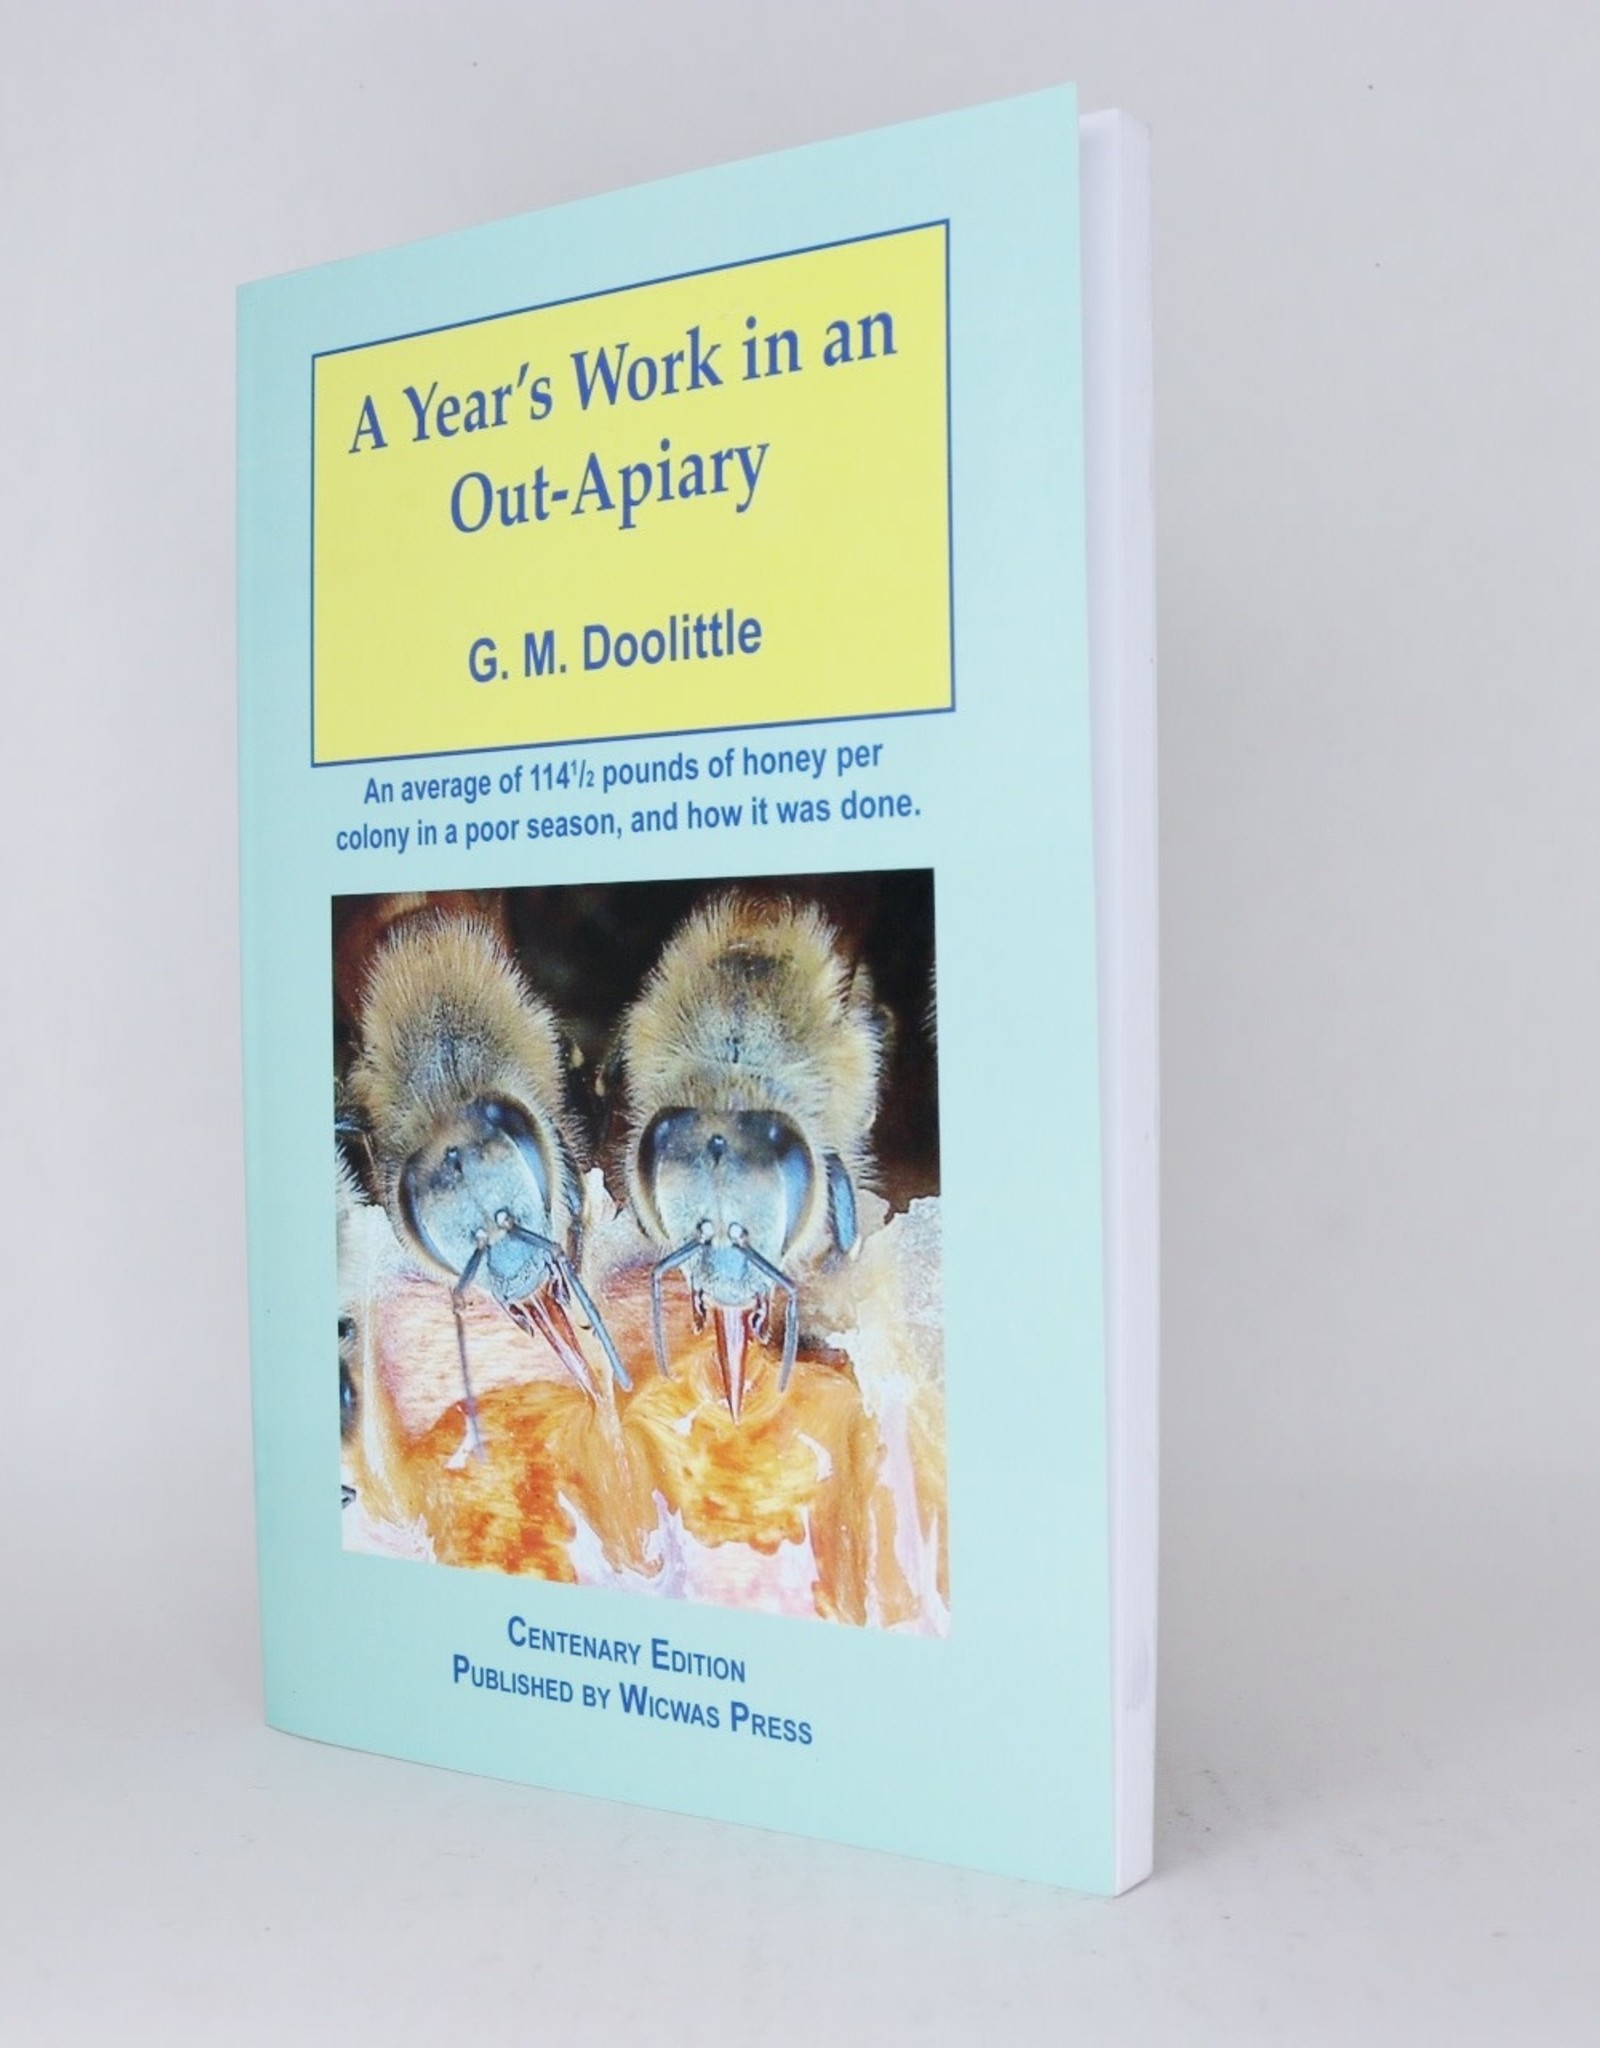 A Year's Work In An Out- Apiary, by G.M. Doolittle